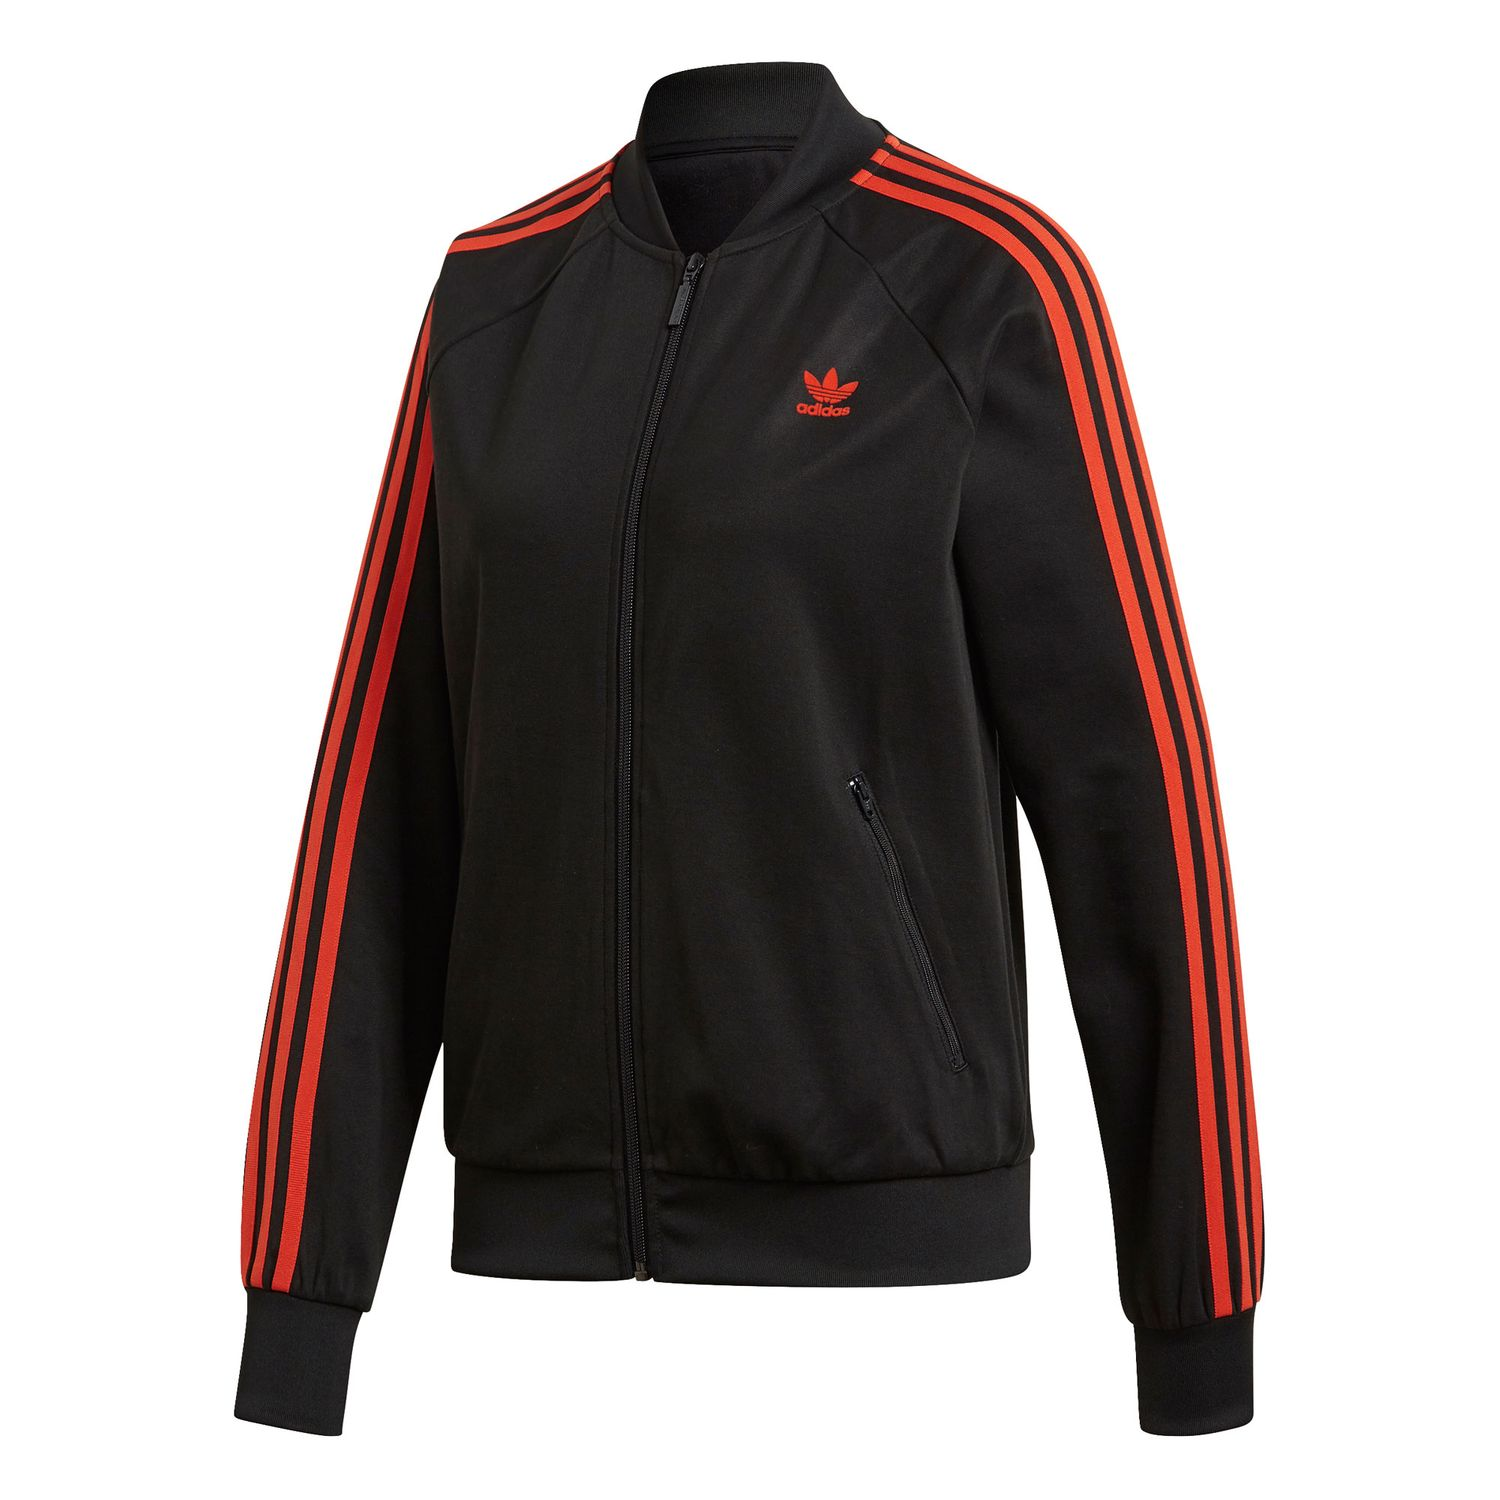 adidas Originals SST Track Top Damen Jacke schwarz orange DU9941